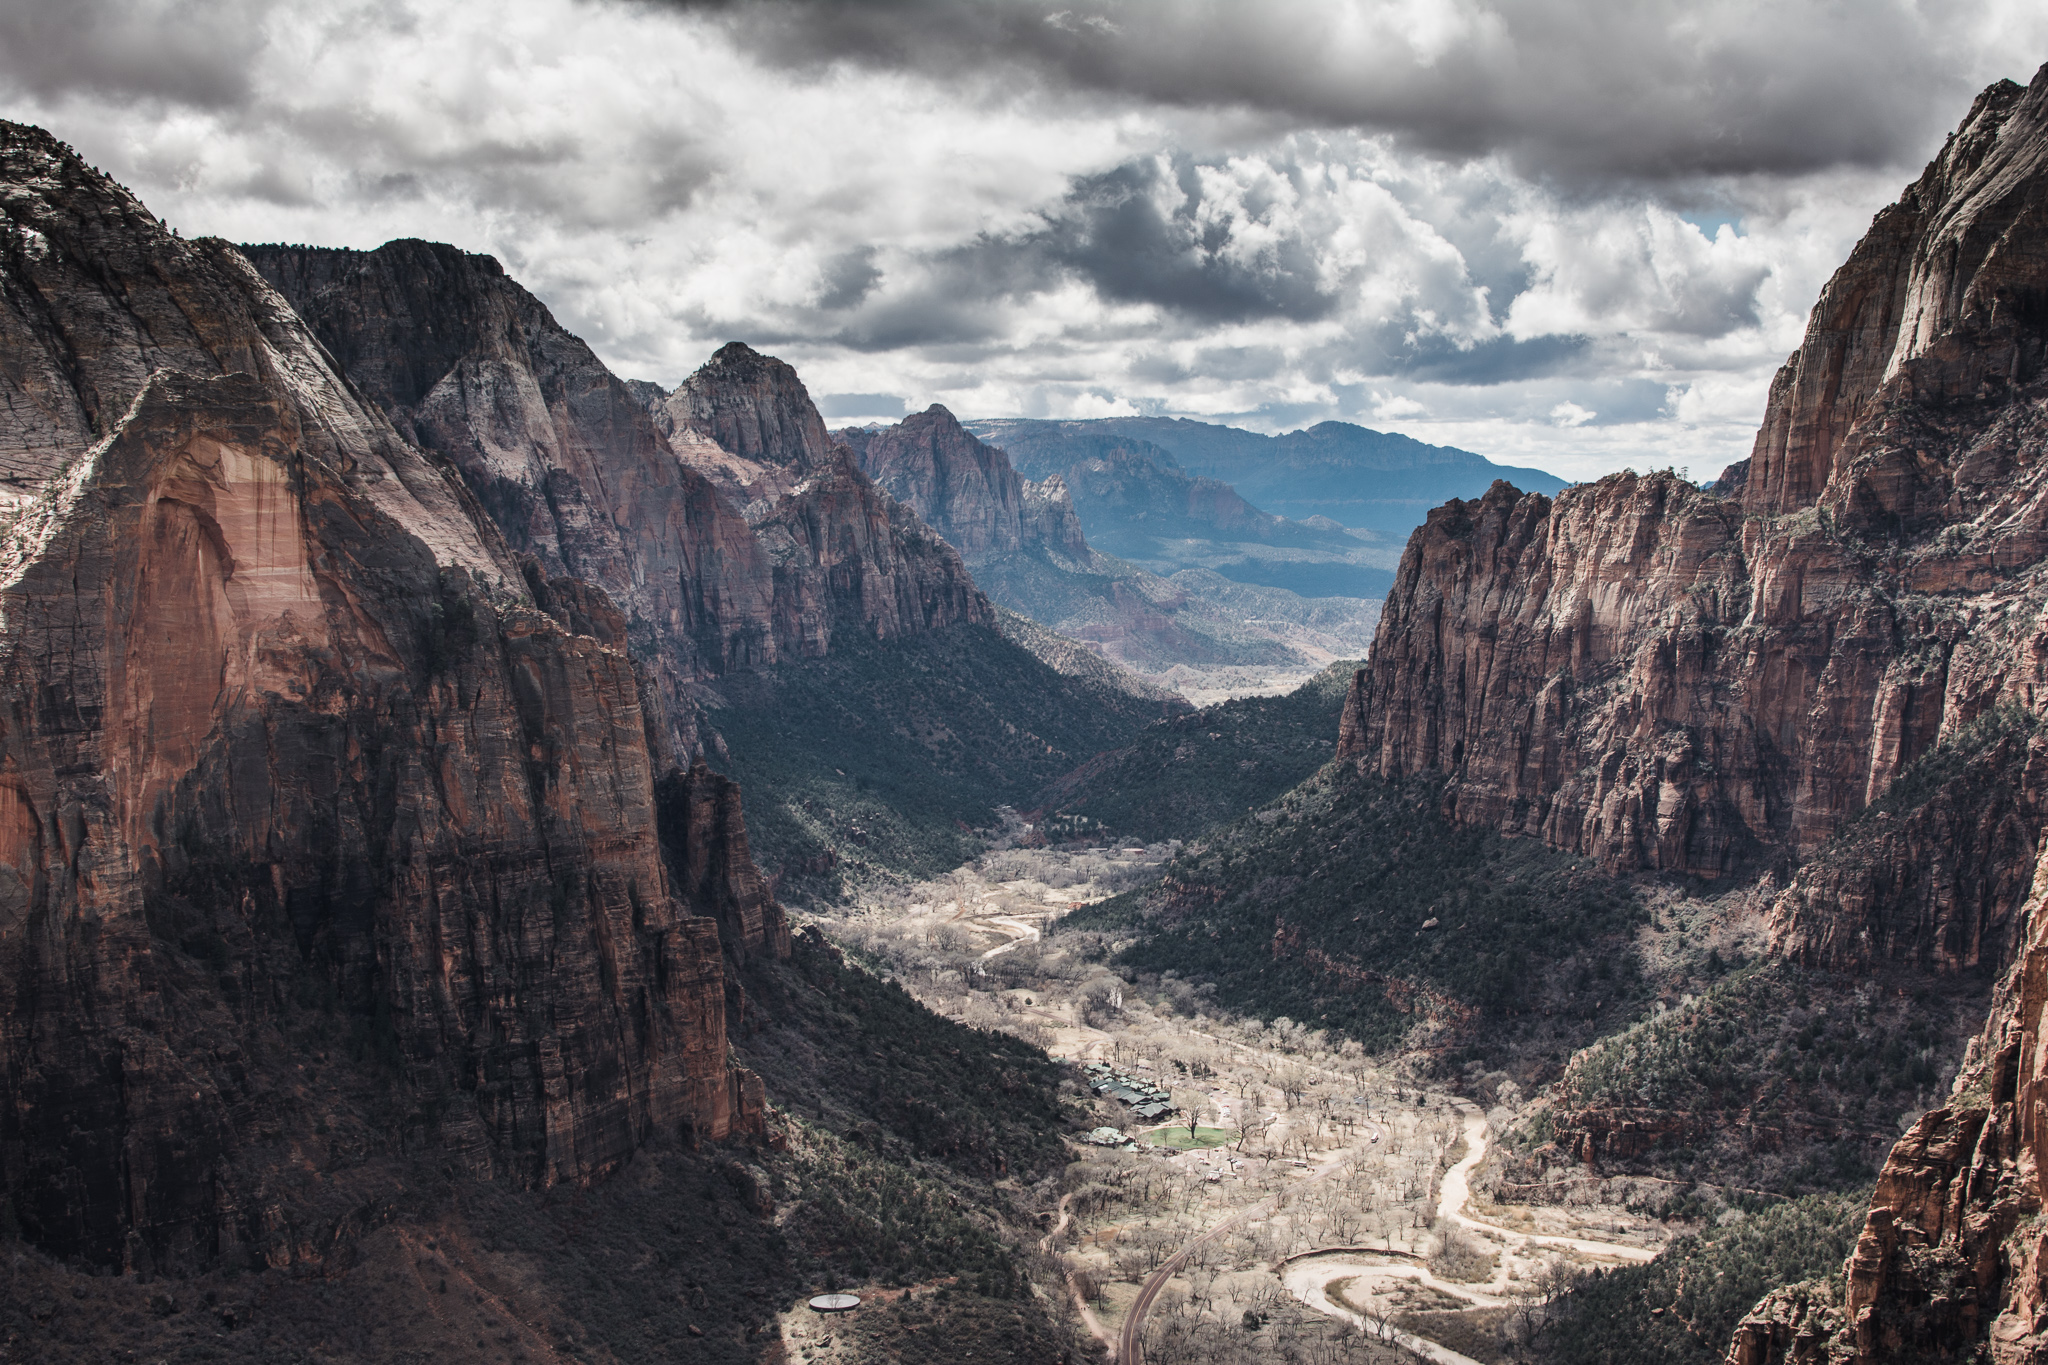 The view from the top of Angel's Landing is pretty neat.